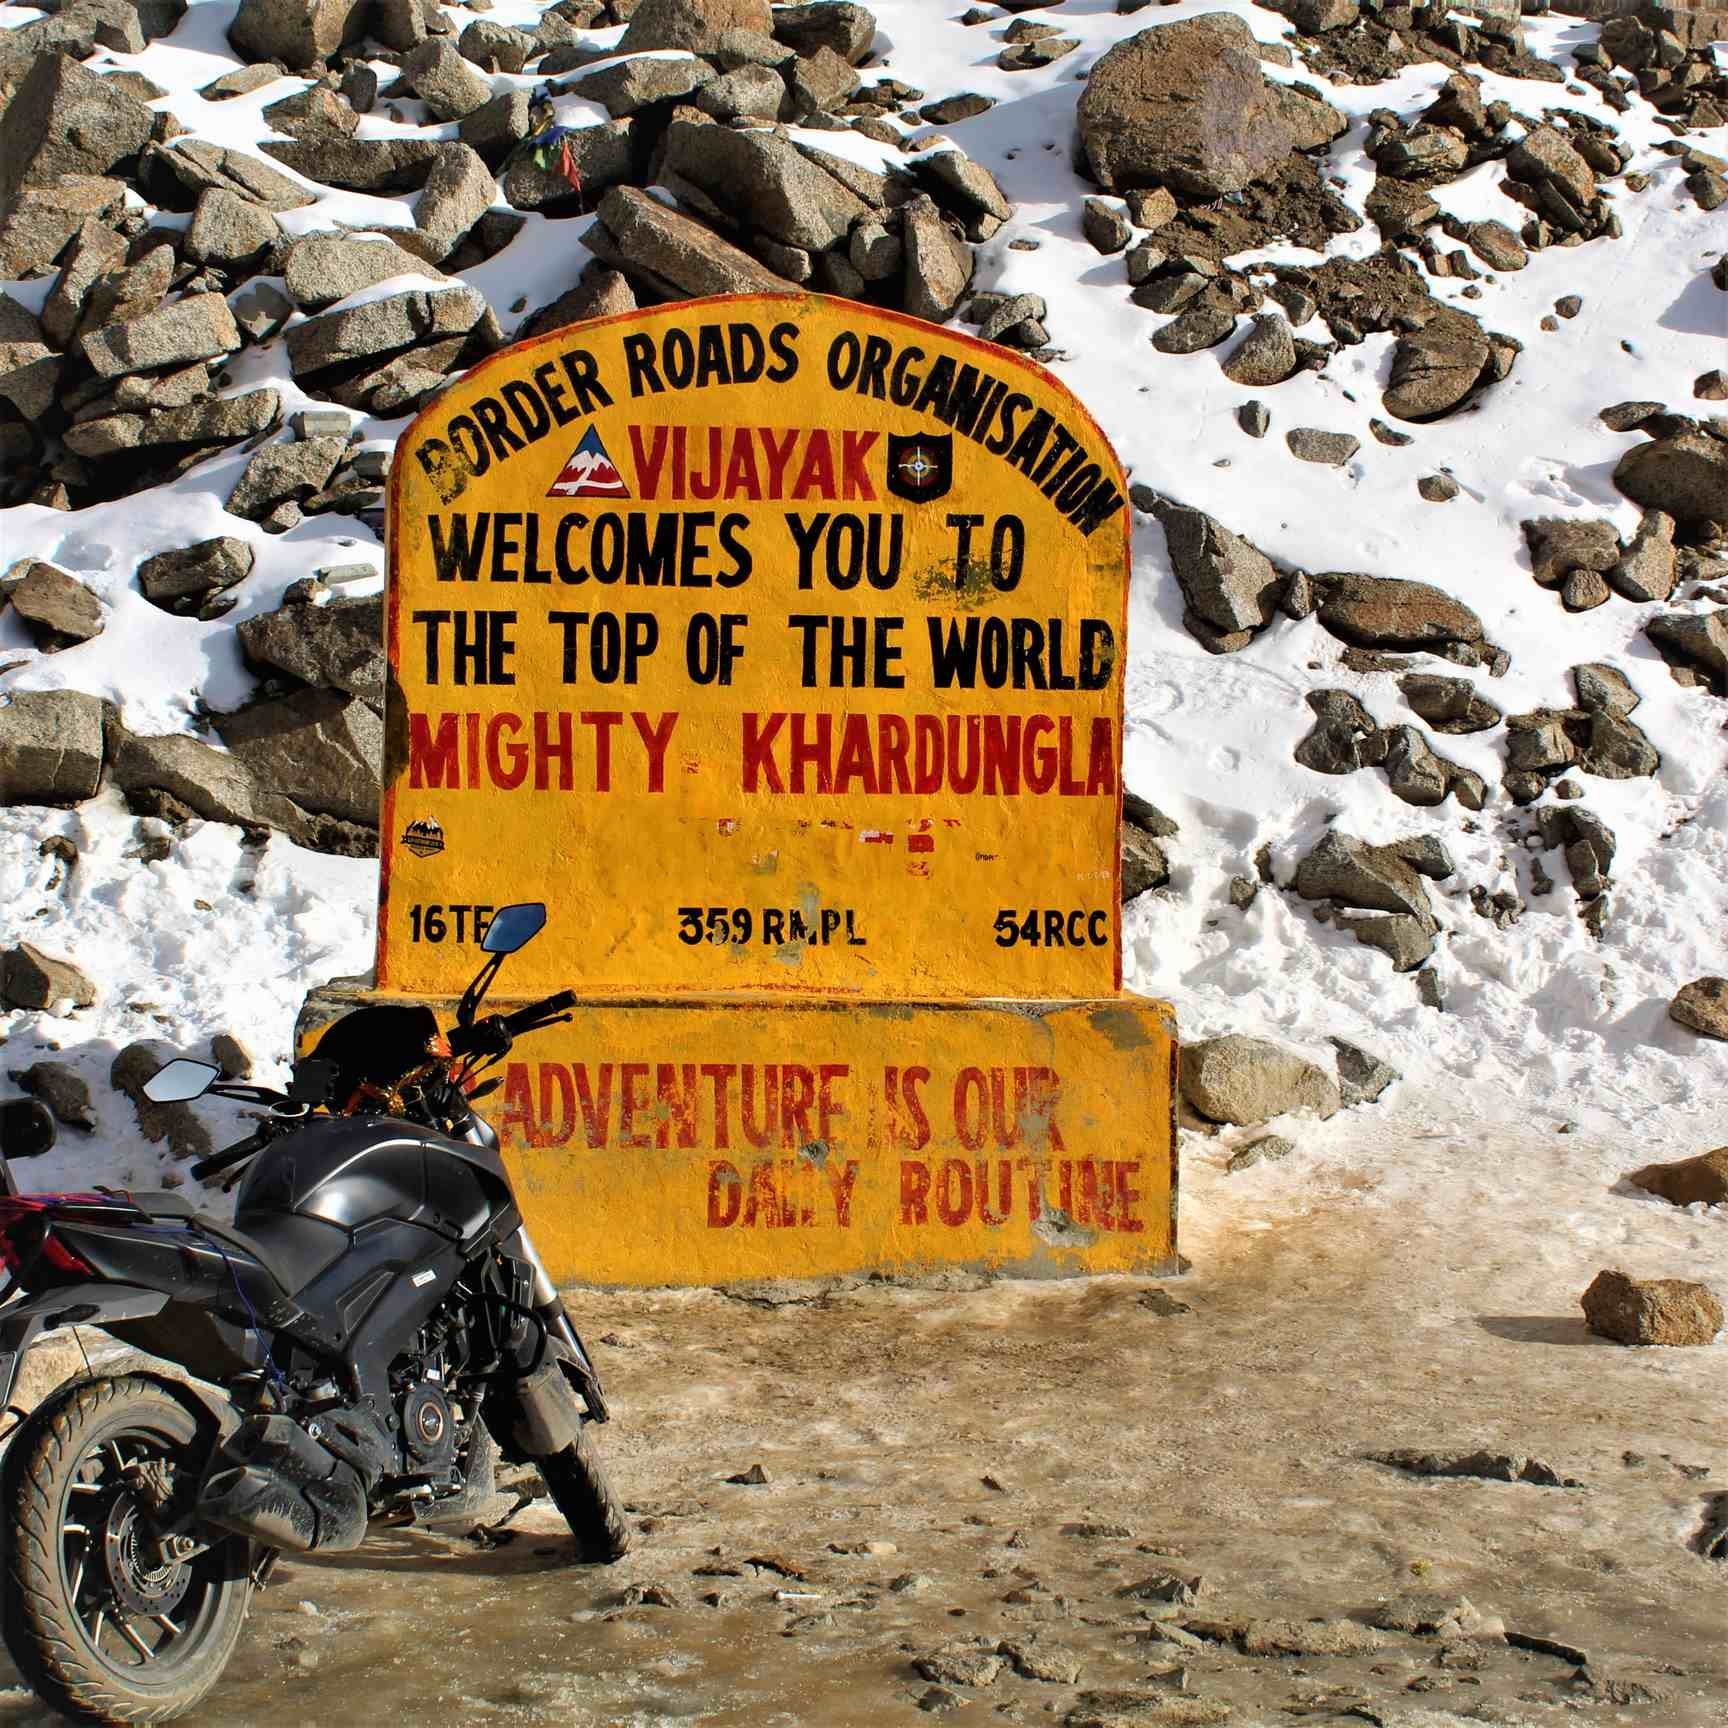 Kardungla pass sign with bike parked aside.